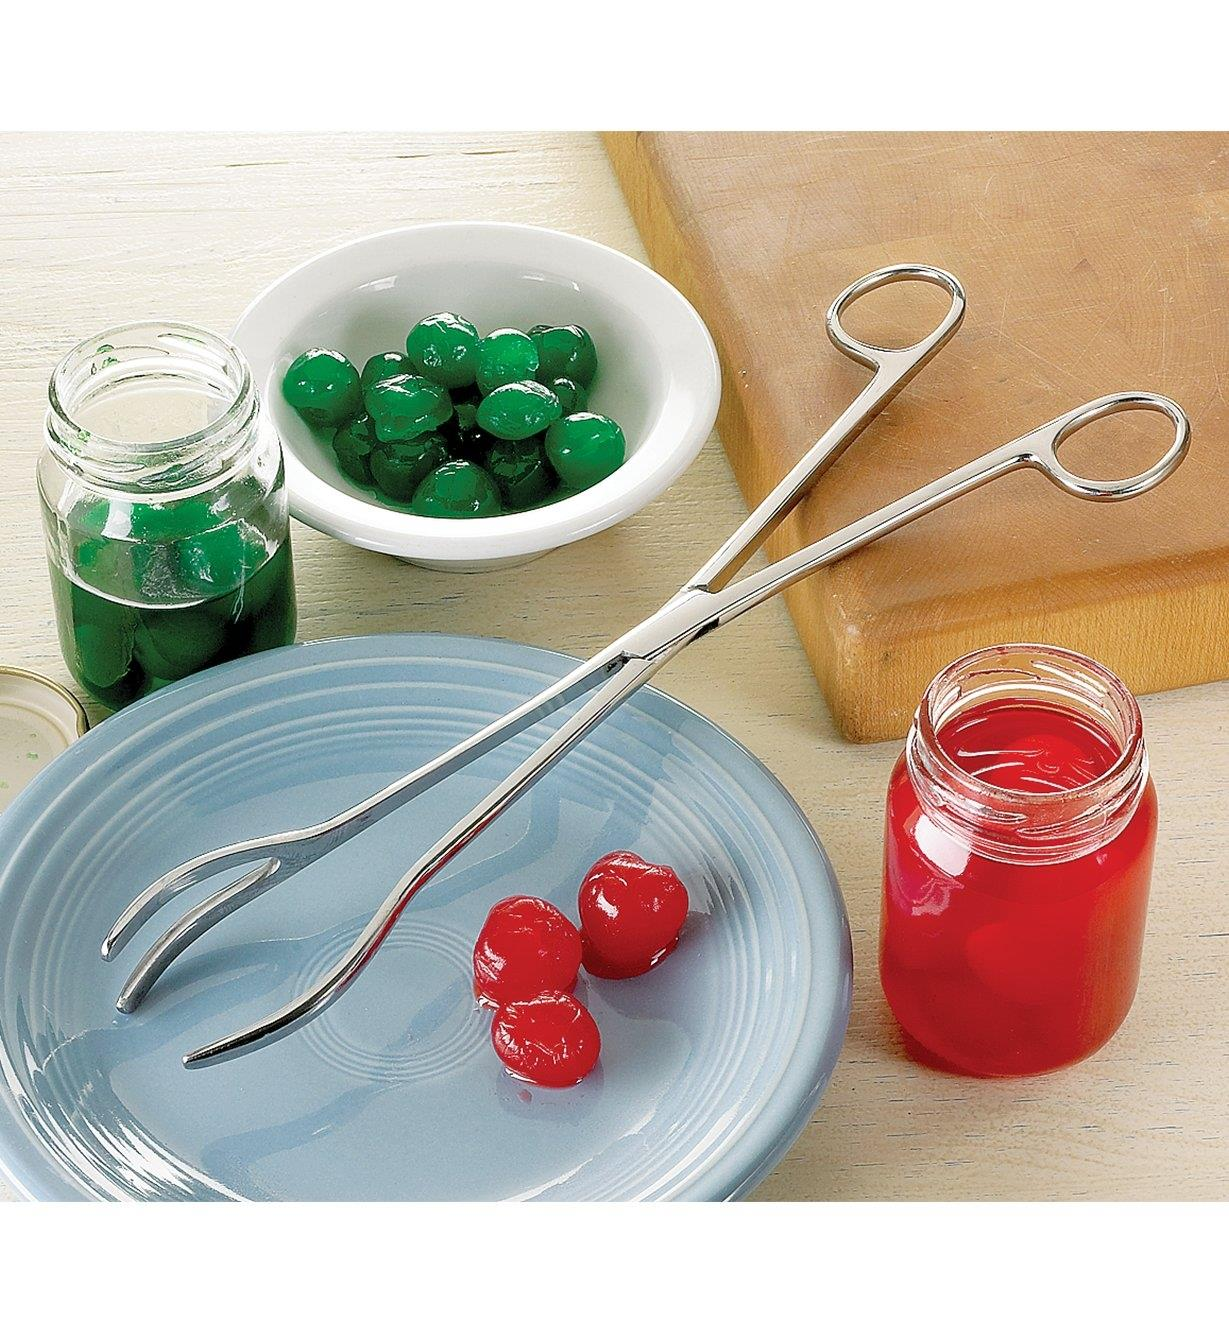 Kitchen Tongs resting on a plate beside two jars of maraschino cherries